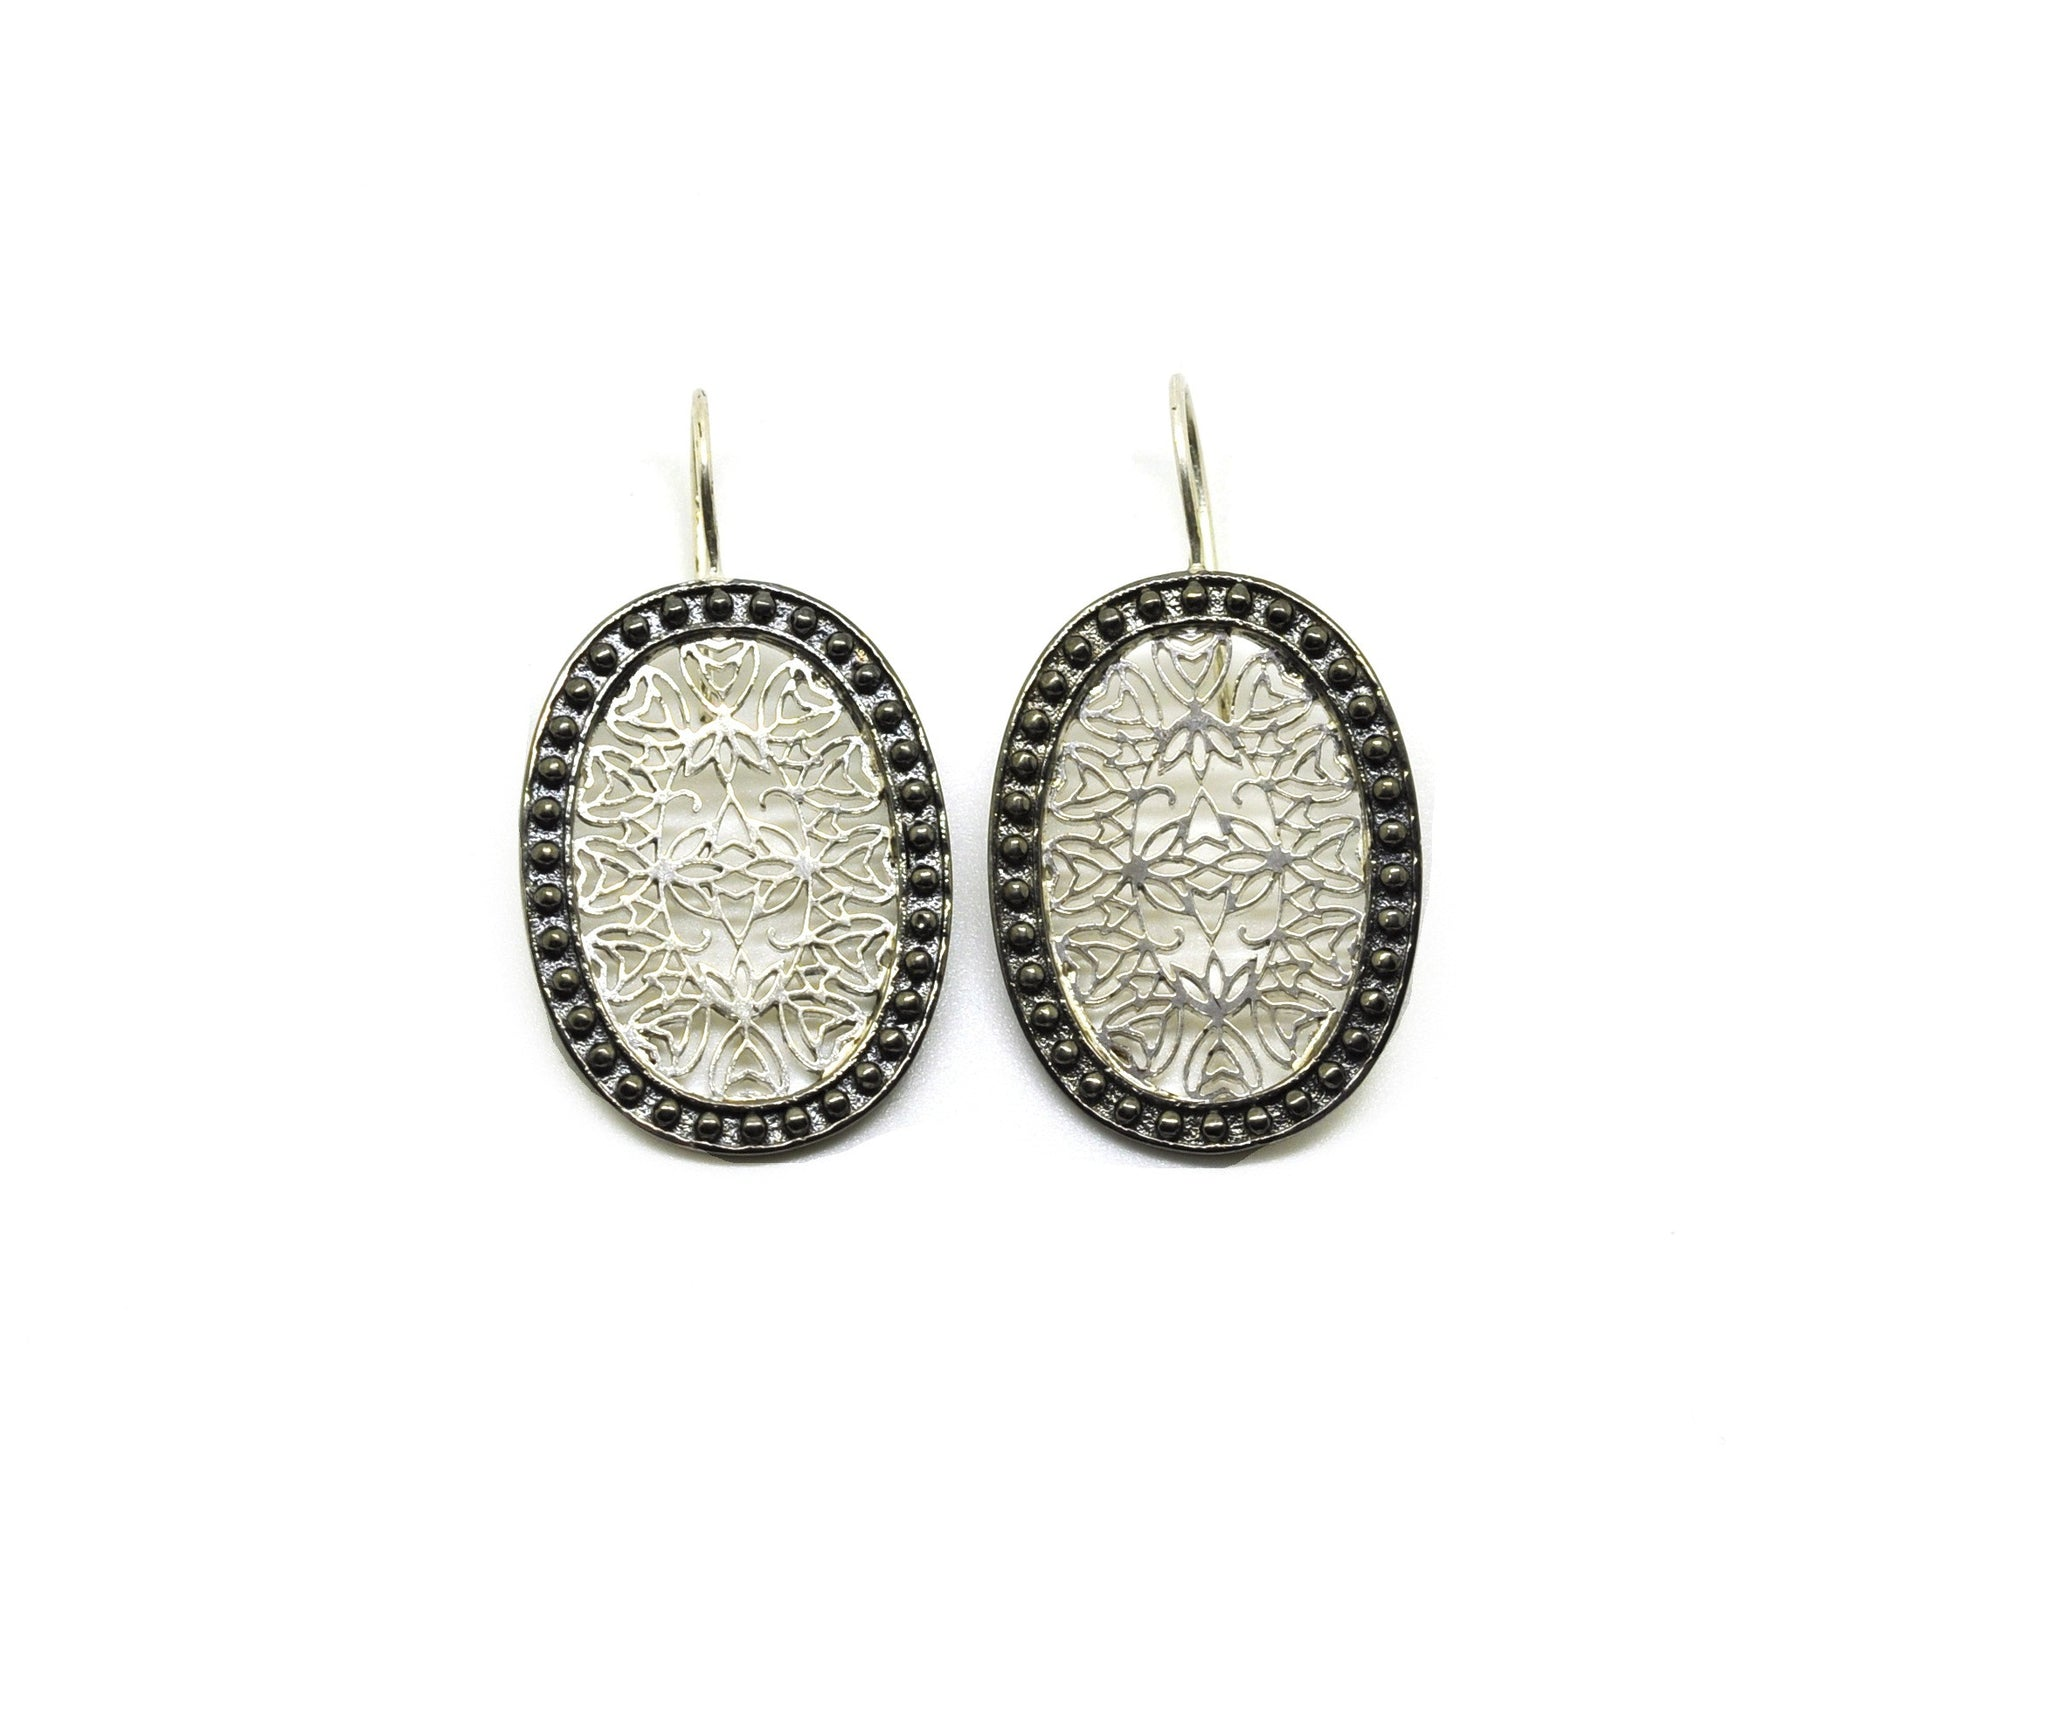 ON SALE Dual tone oval filigree 2